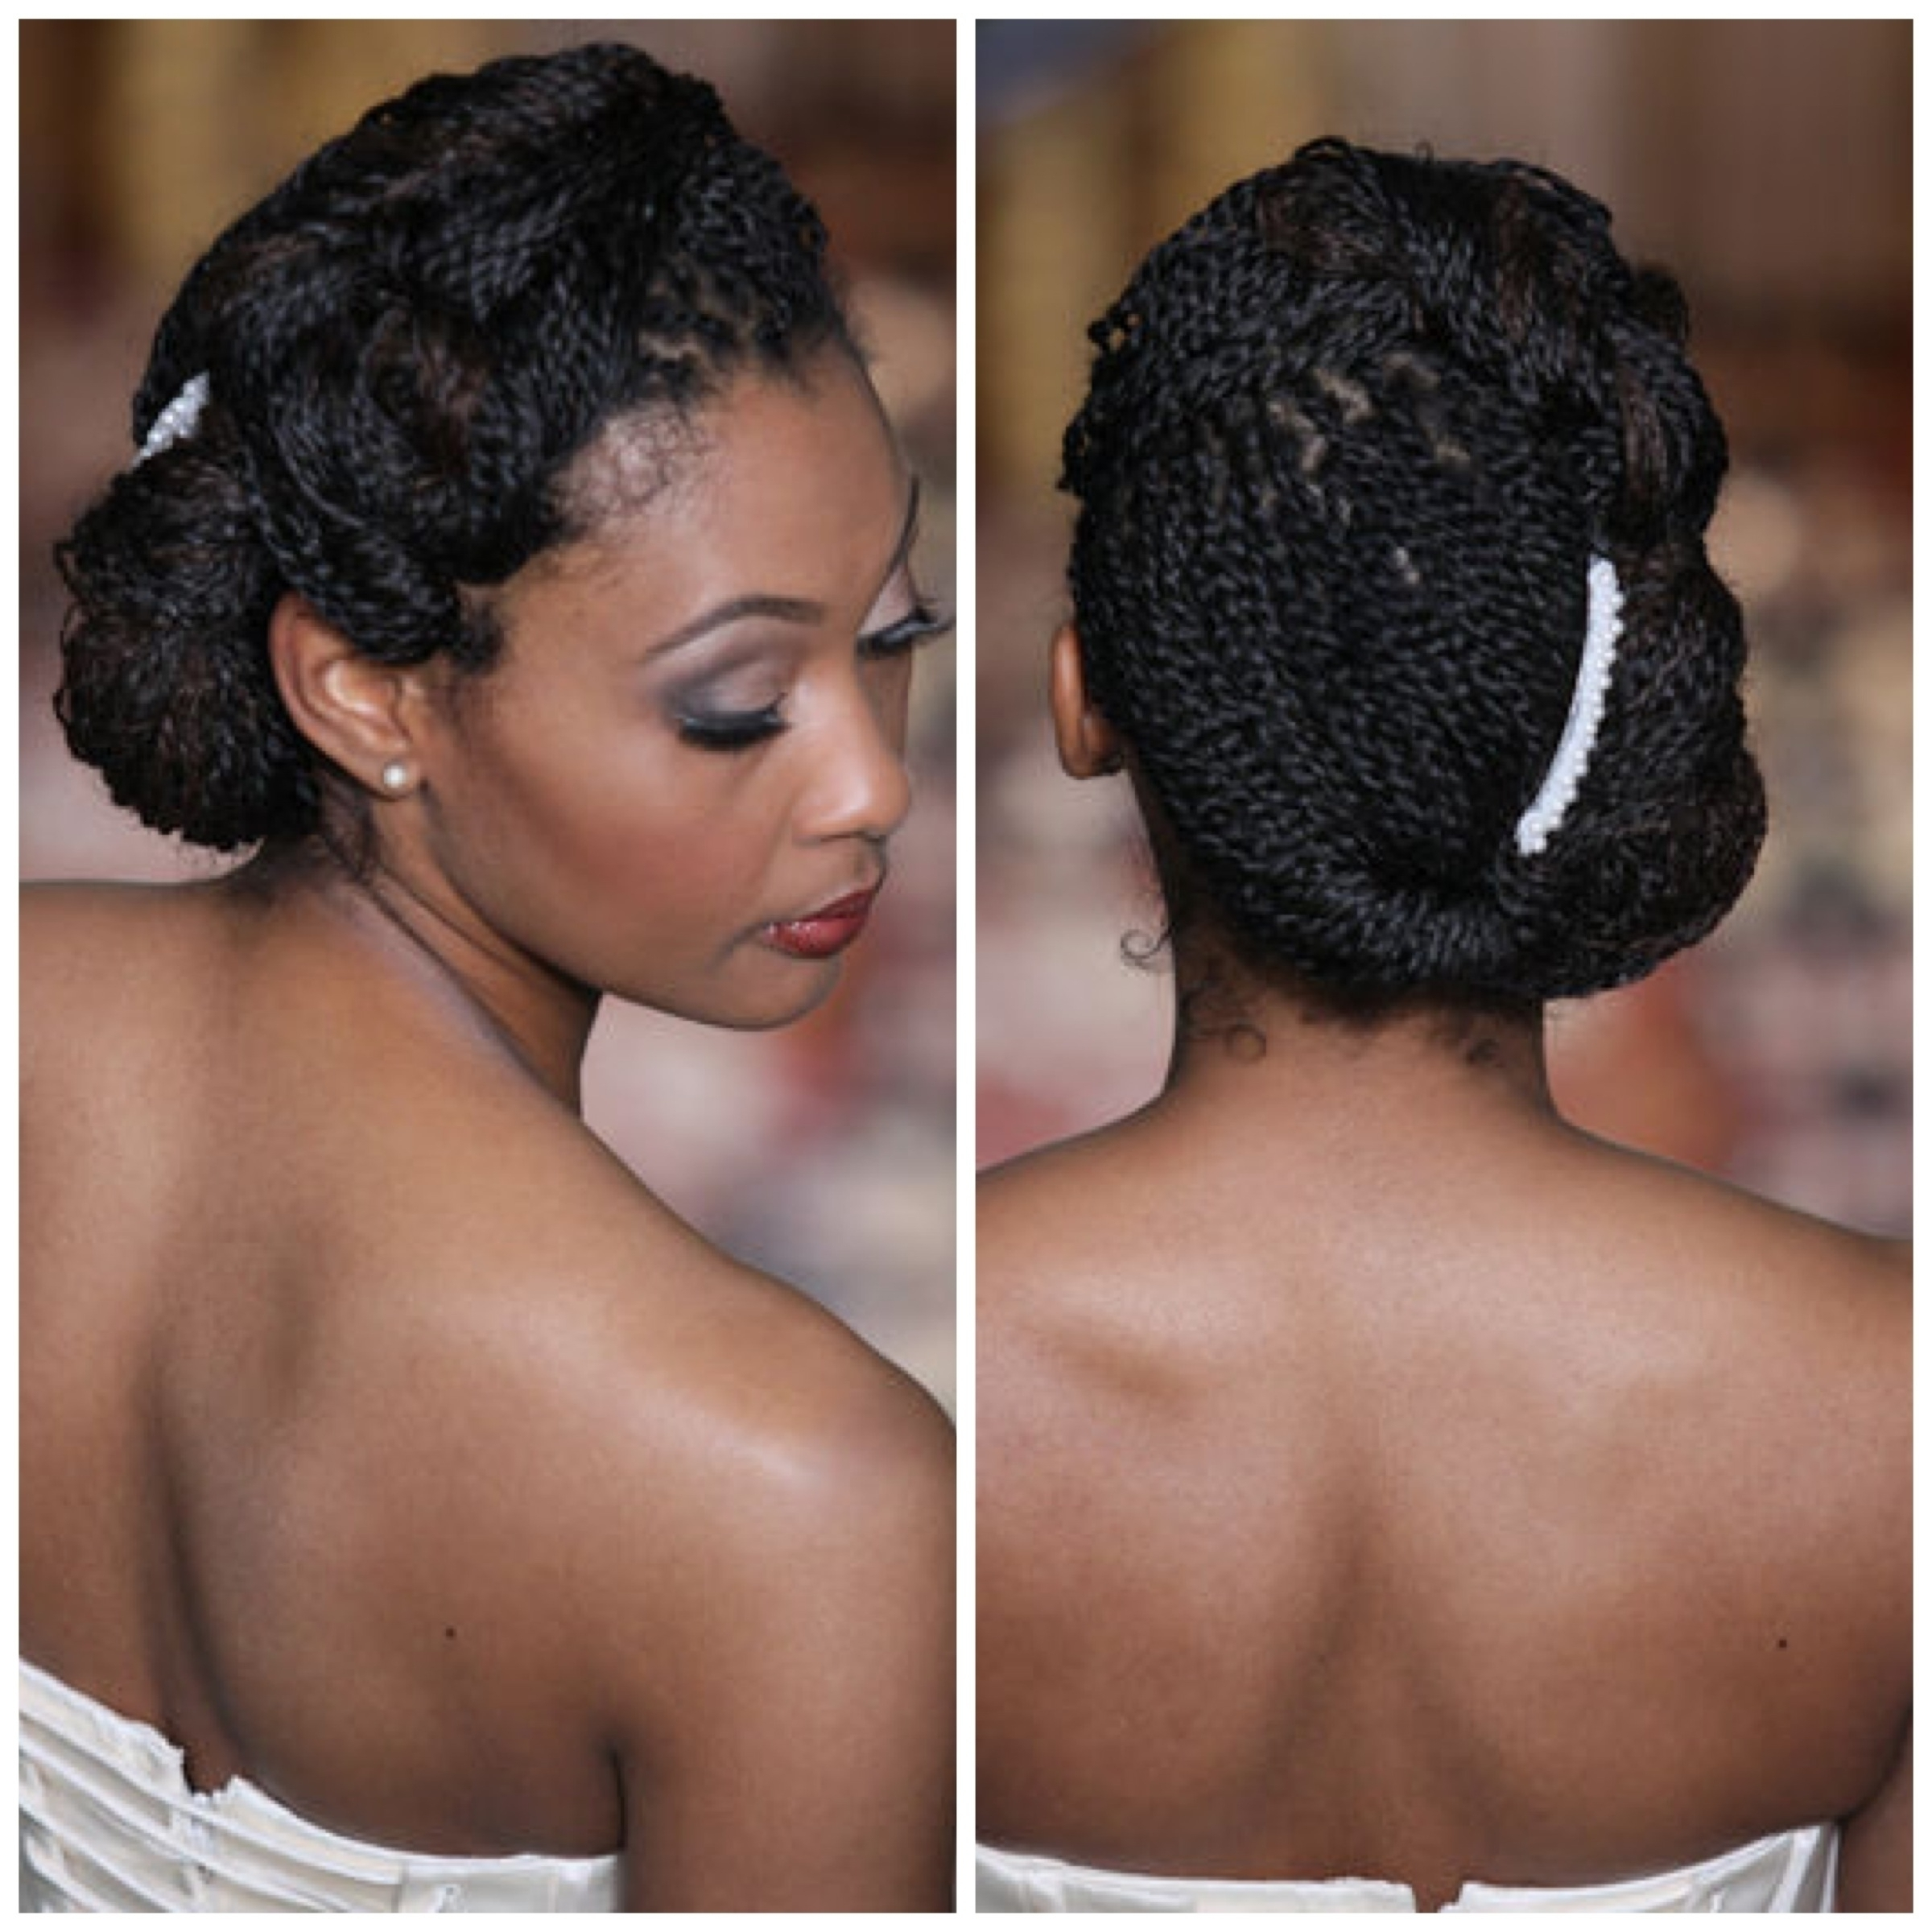 Black Braid Hairstyles For Wedding Updo Hairstyles For Black Women Regarding Latest Wedding Hairstyles With Box Braids (View 11 of 15)